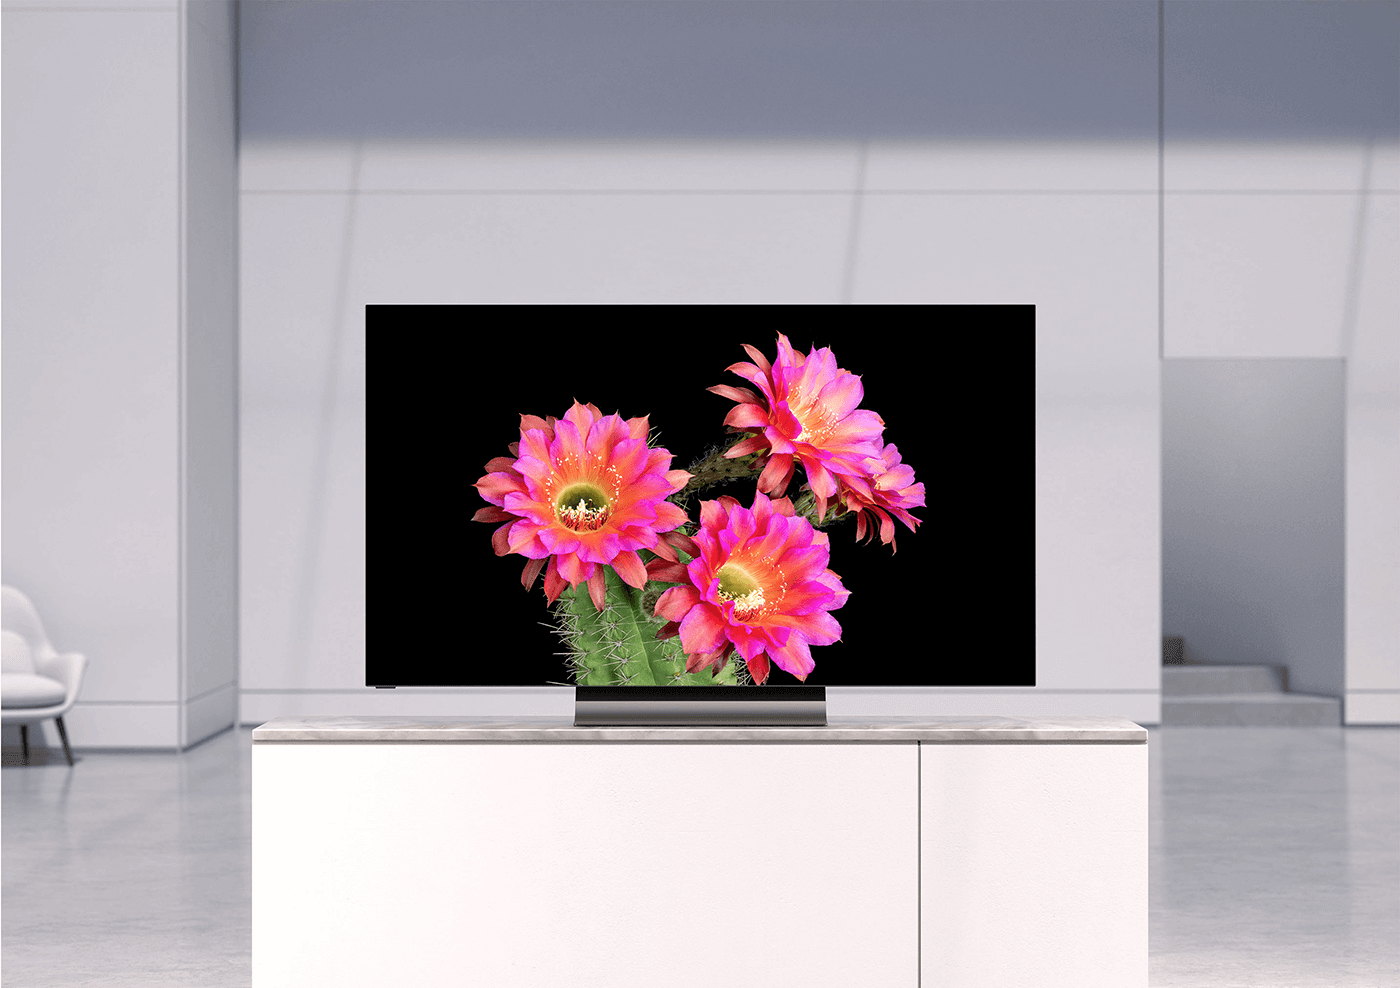 A television displaying a cactus blossoming with pink flowers is sitting on a television stand.